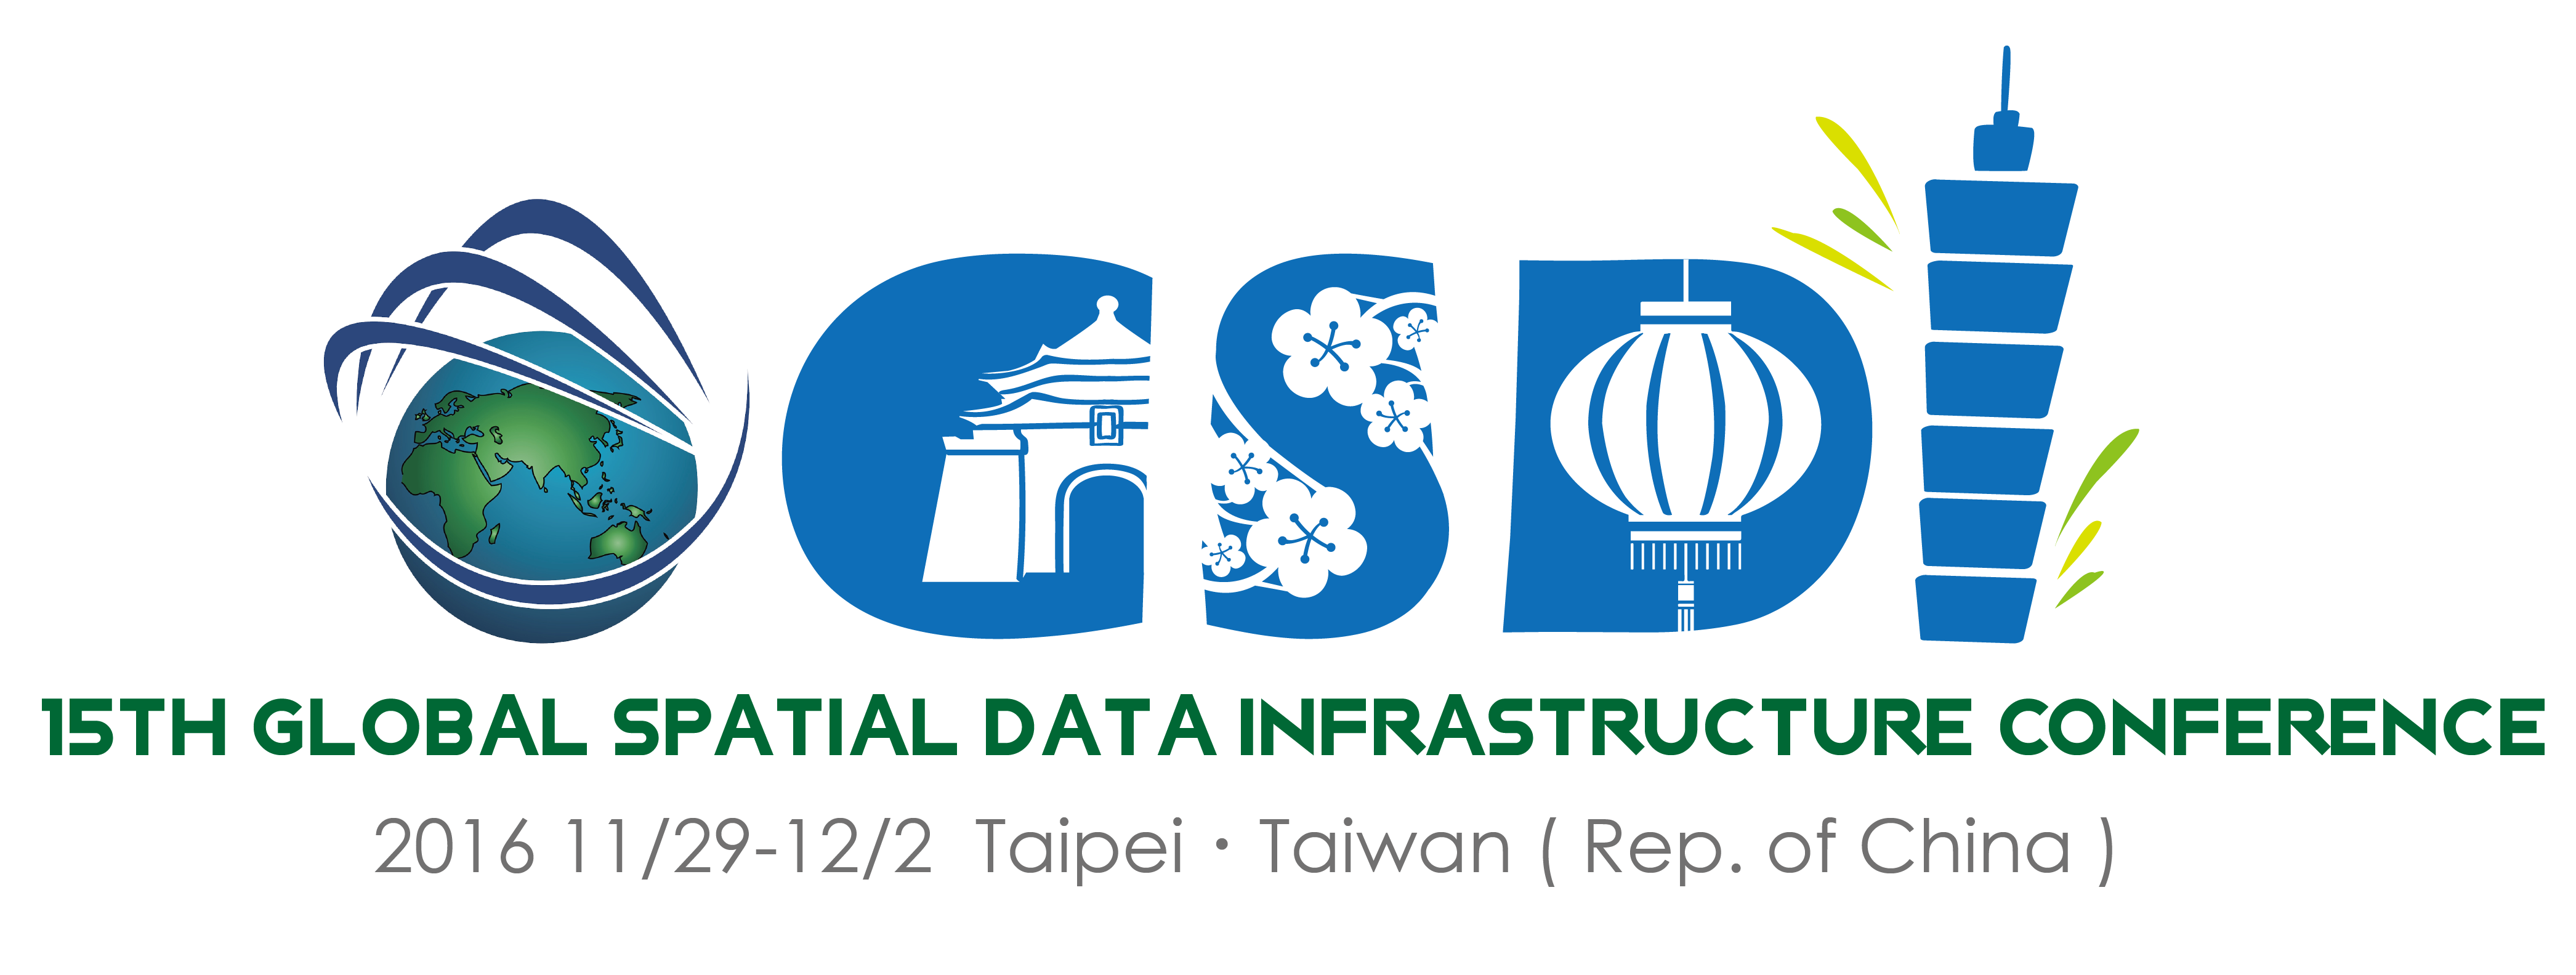 GSDI 15 logo with updated dates